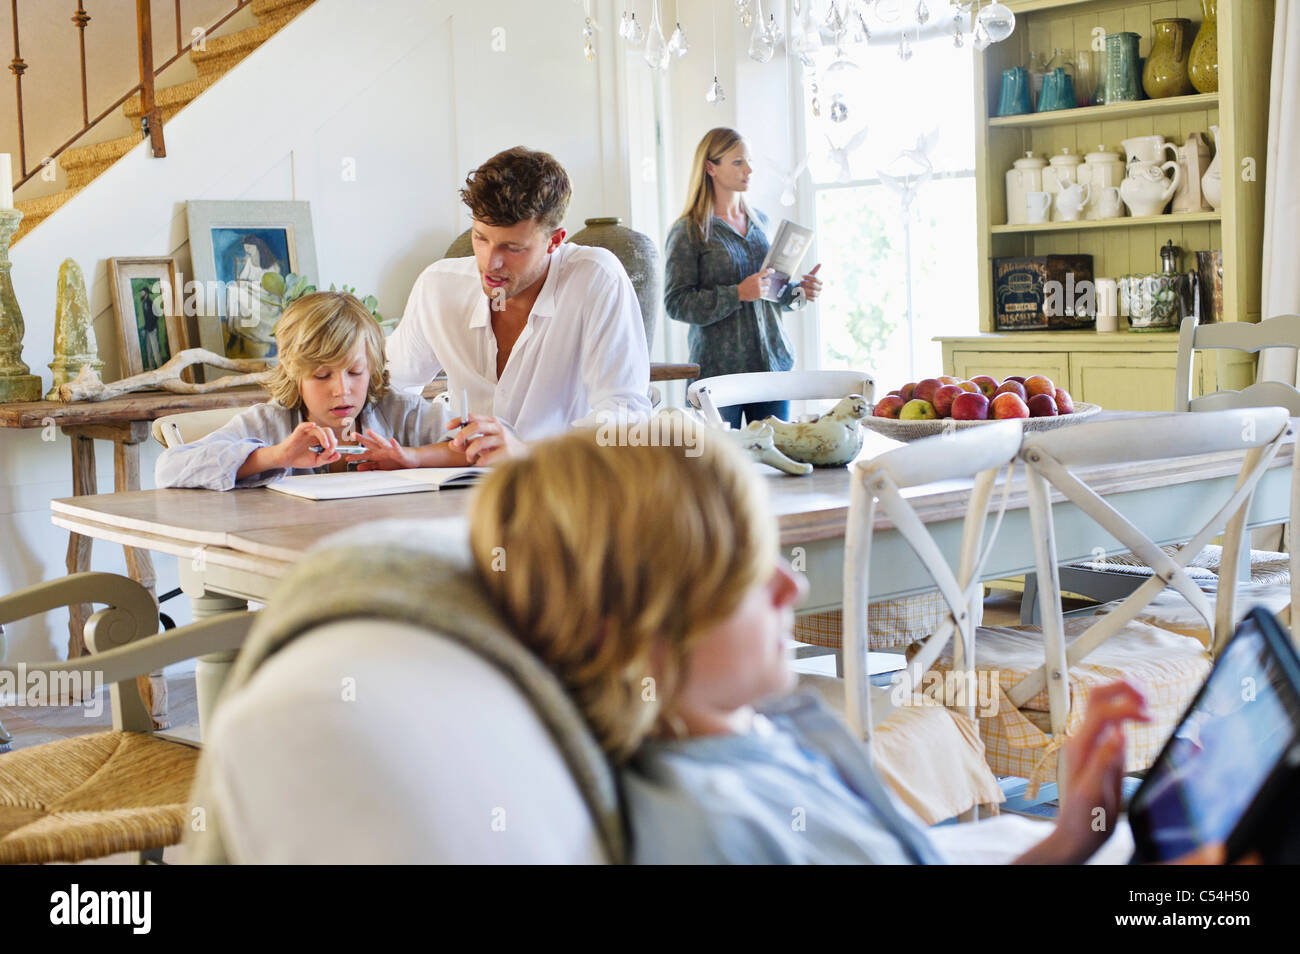 Man teaching little boy while family members busy doing their work at house - Stock Image